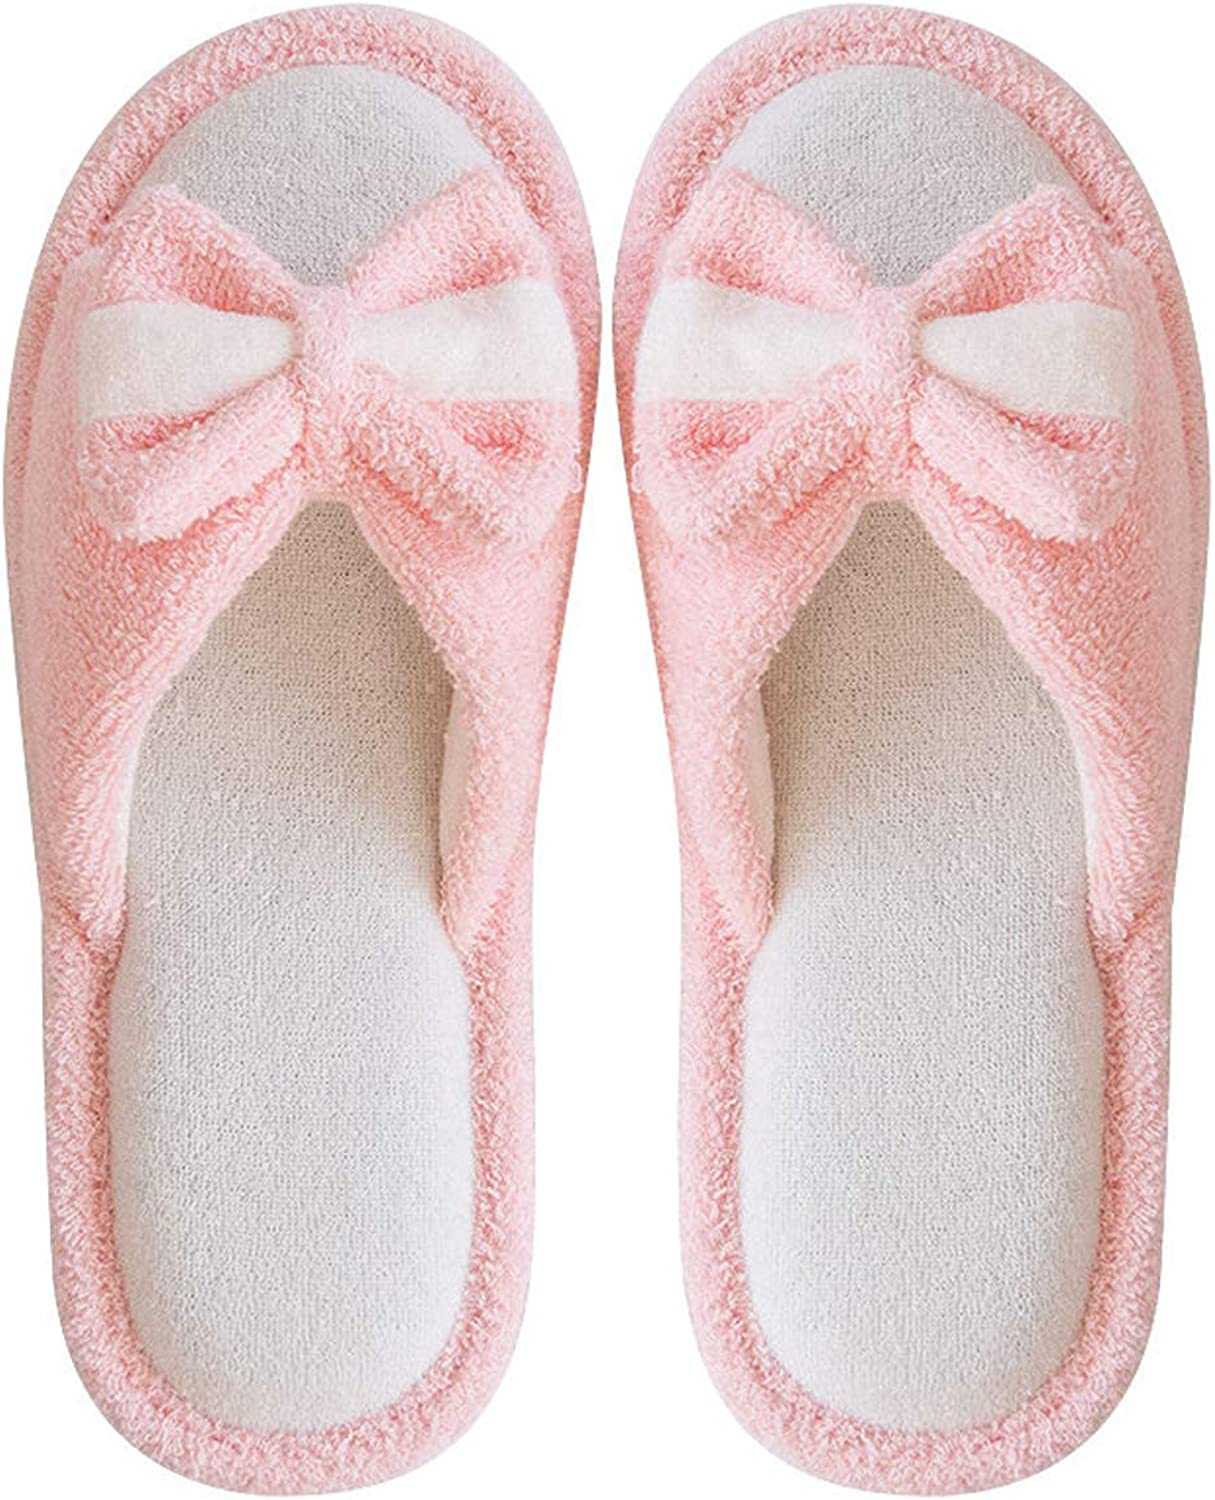 Women Bow Cute Home shoes Non-Slip Mute Slippers Indoor Slippers Home shoes